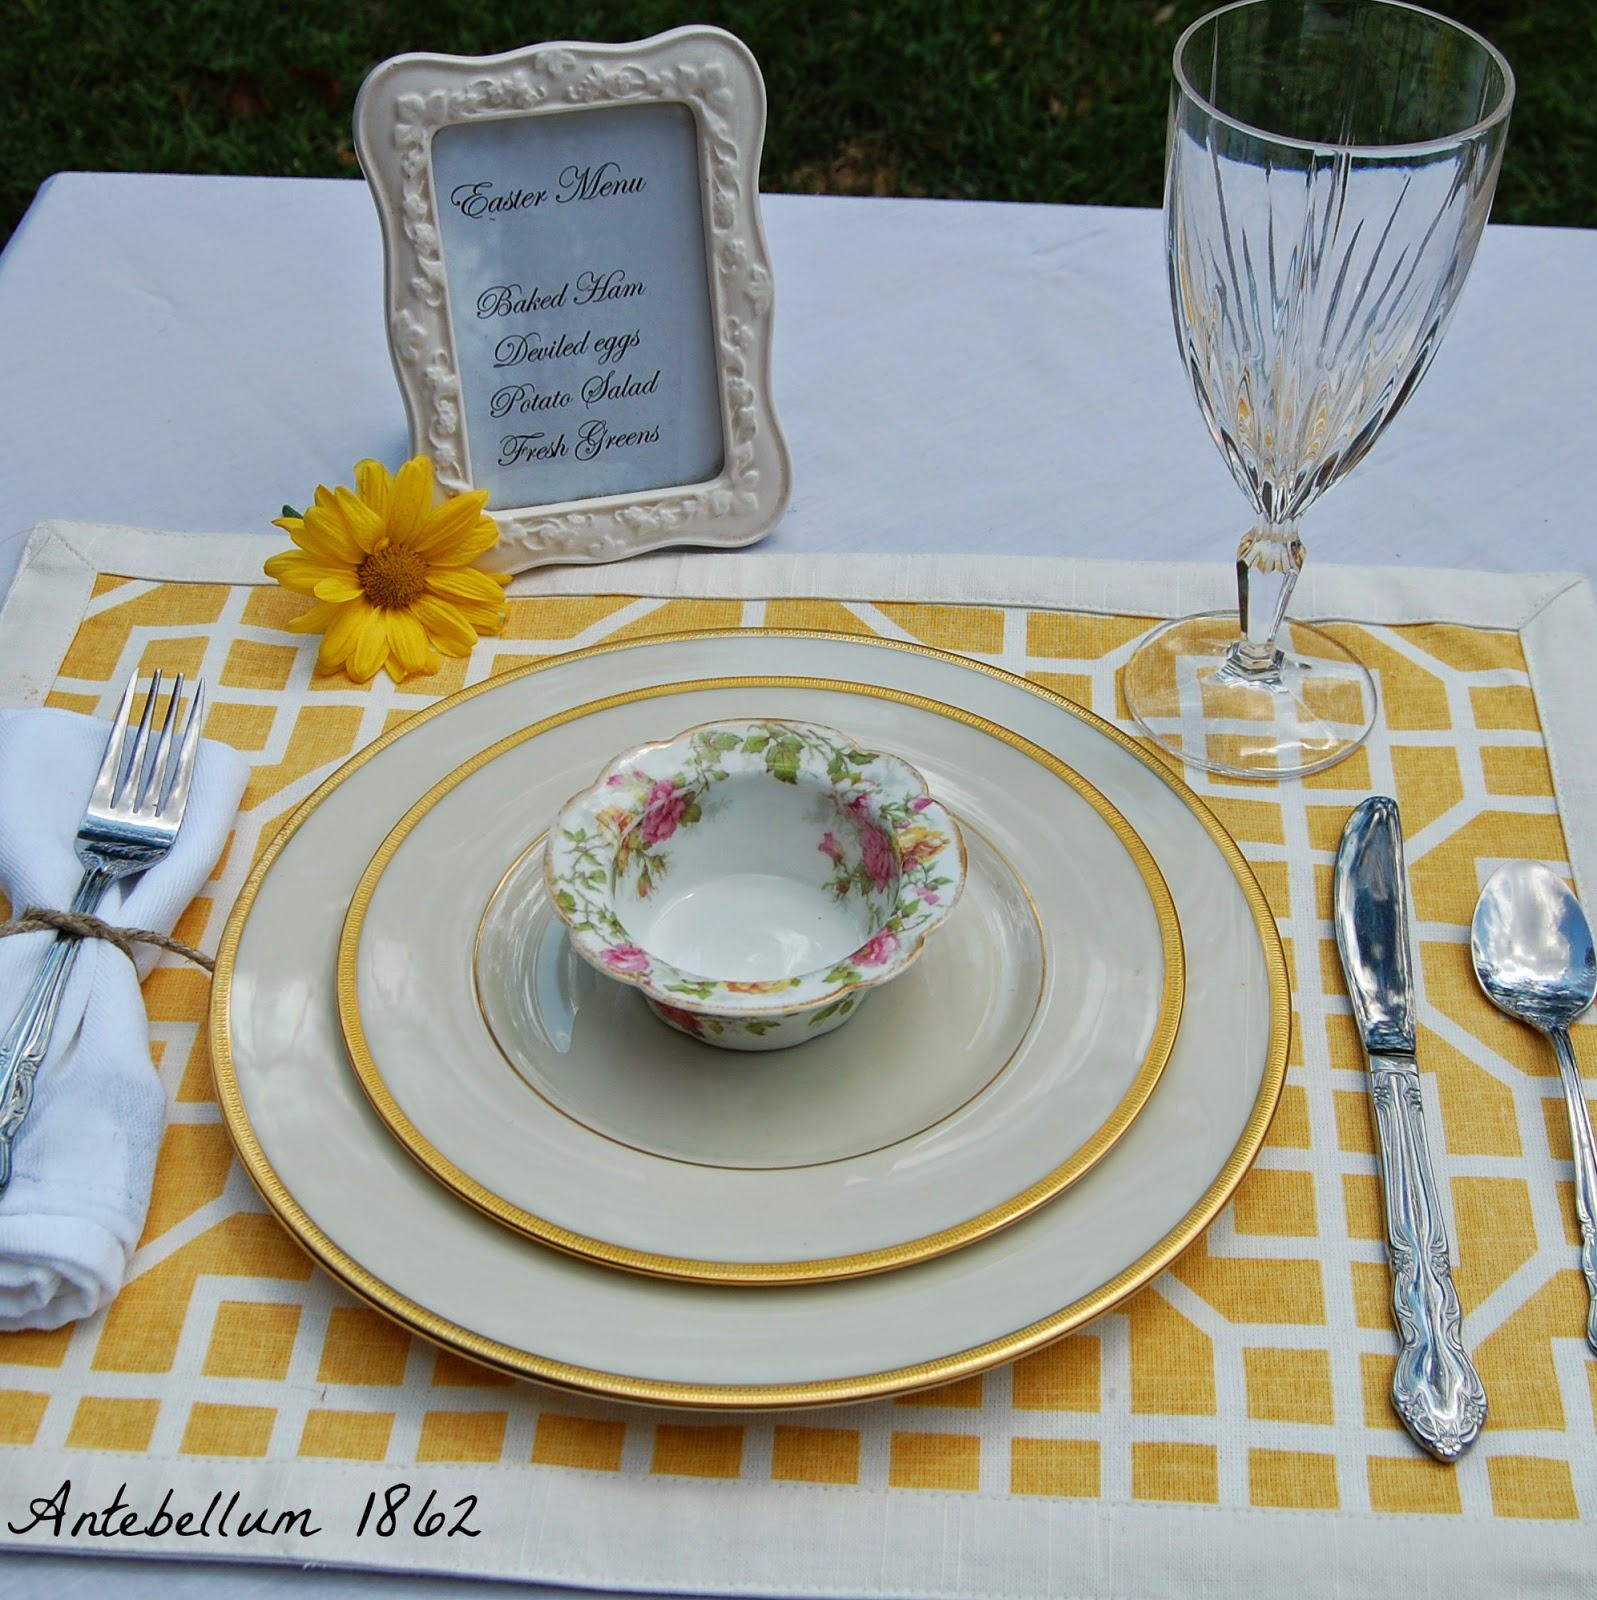 Antebellum 1862 how to create simple table settings for for Simple table setting